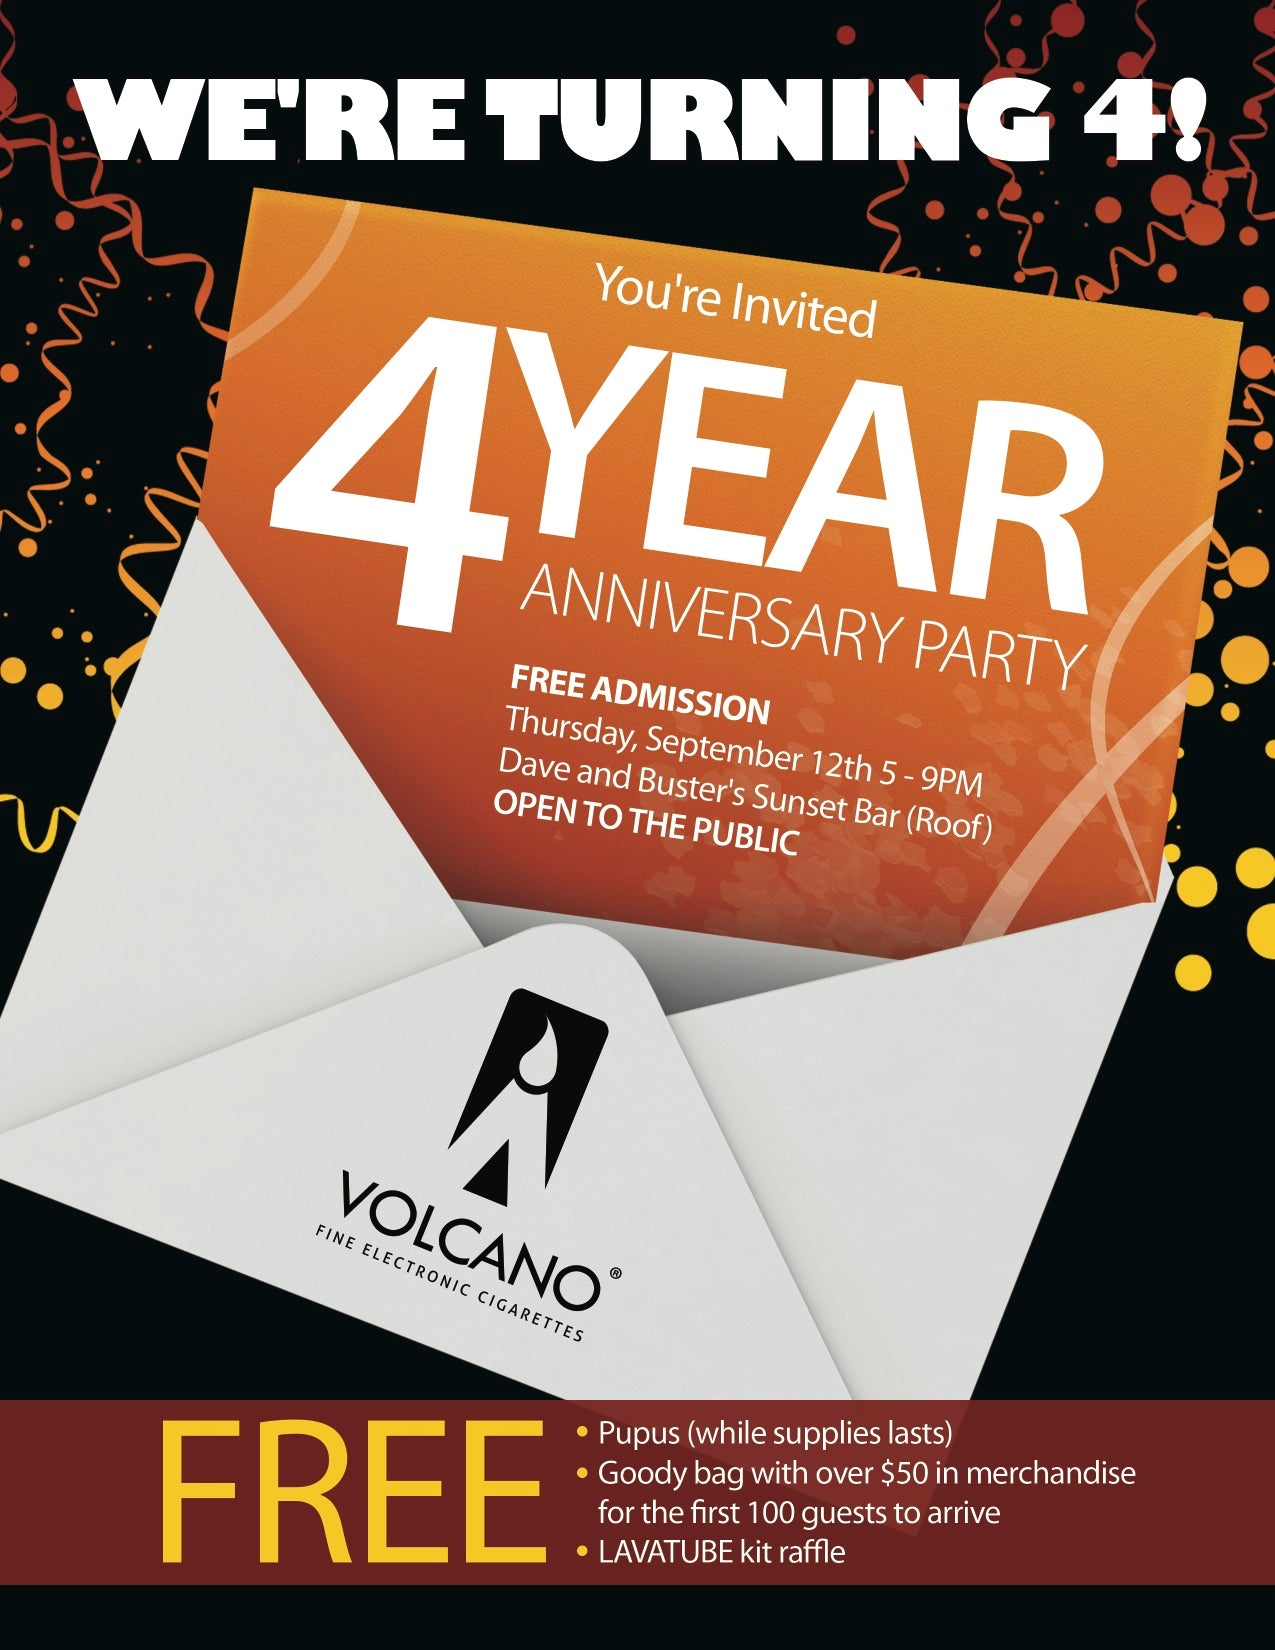 4 Year Anniversary Party